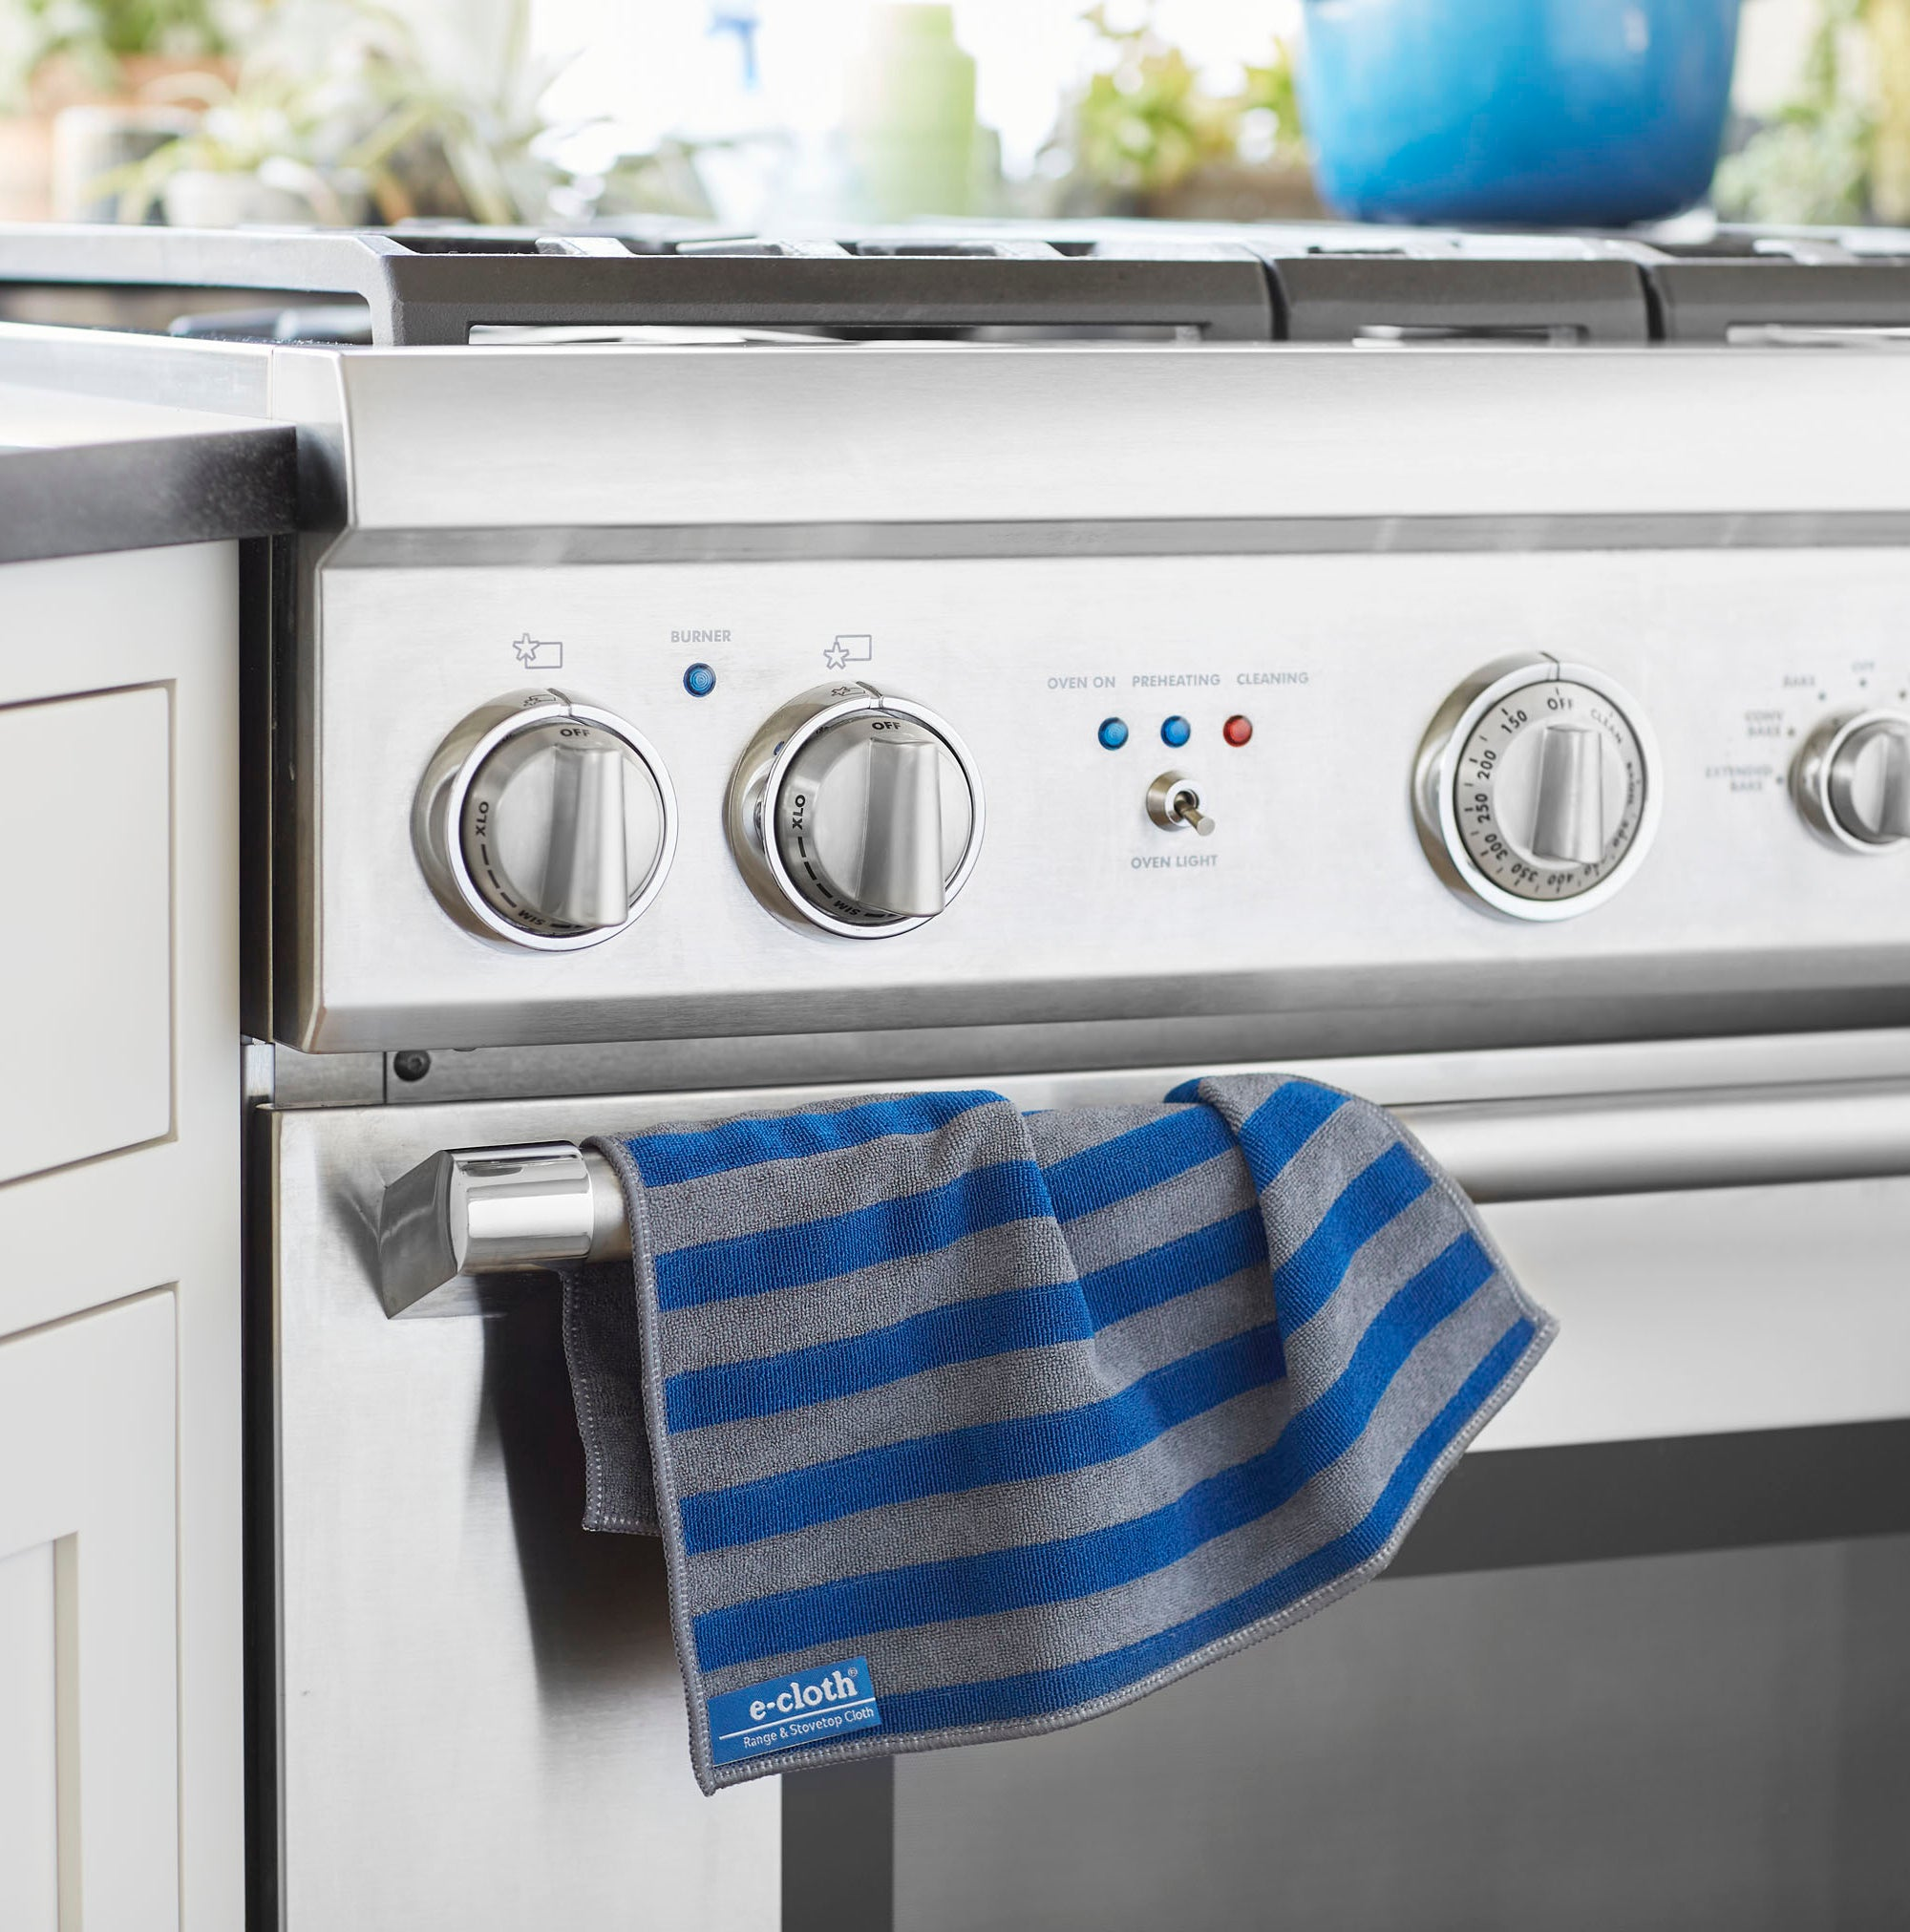 Range Stovetop Cleaning Pack Scrub And Polish Oven Surfaces